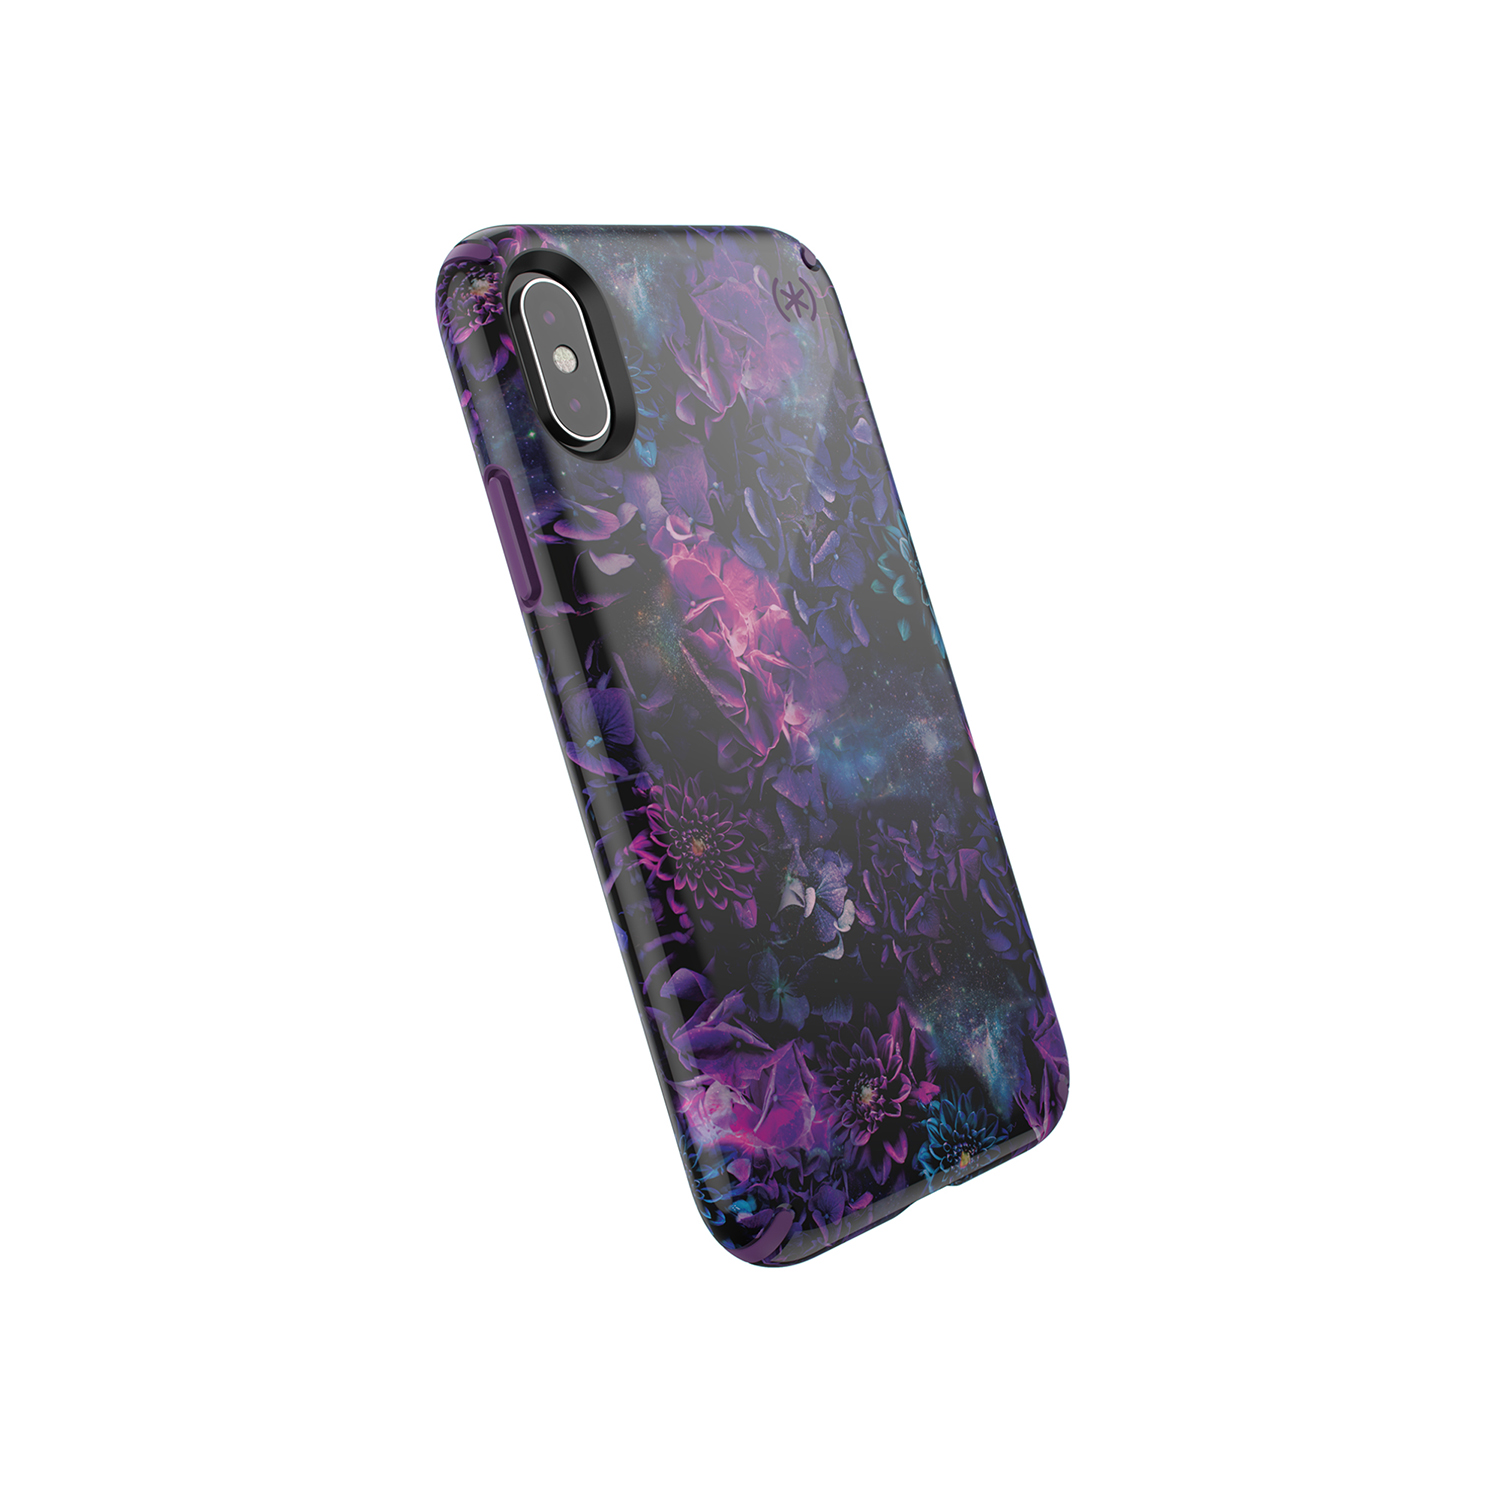 Presidio INKED Galaxy Floral case for iPhone XS